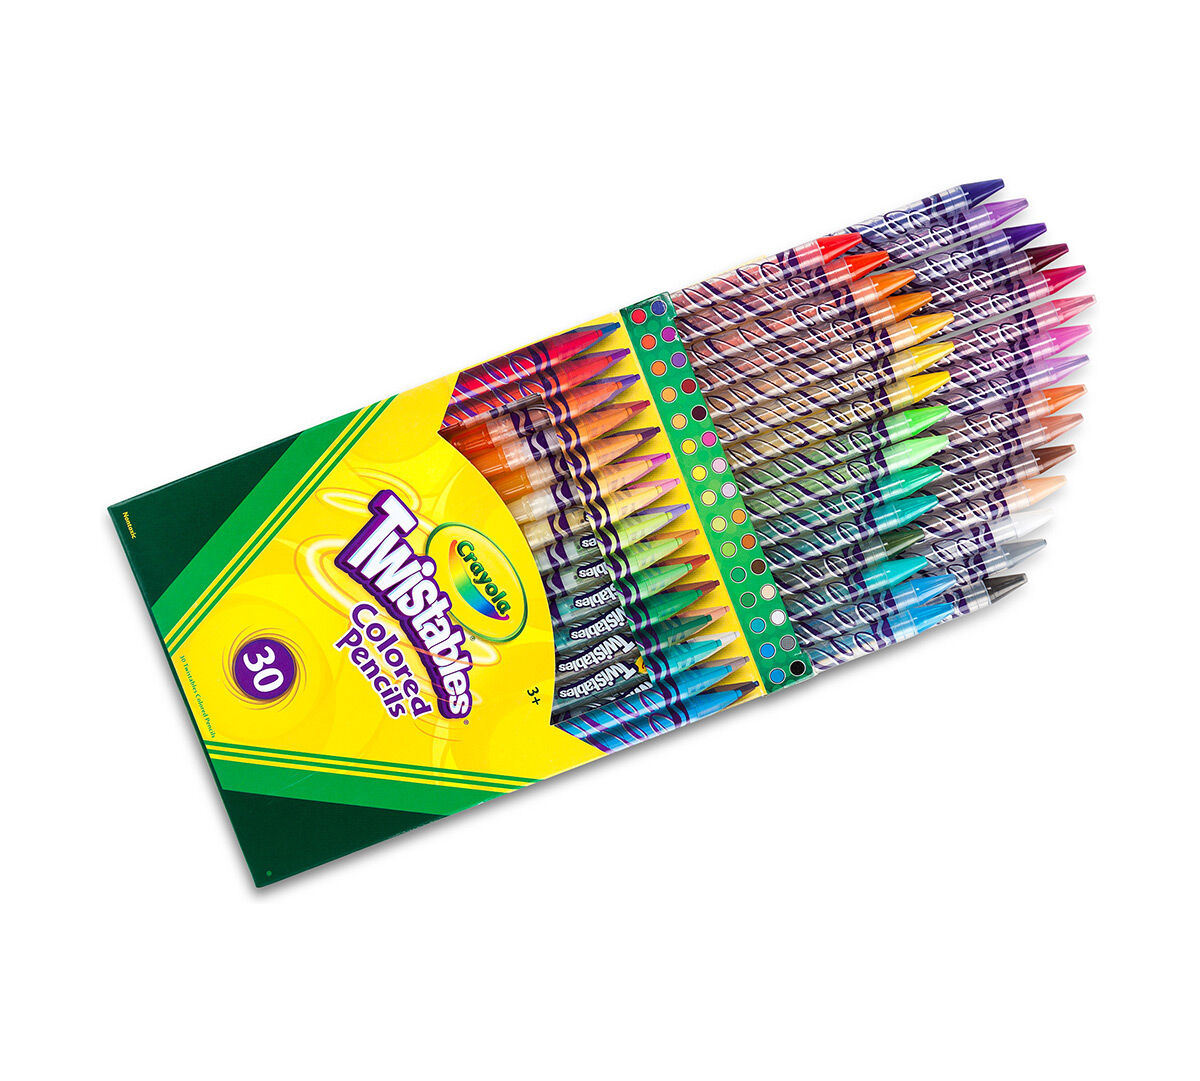 Includes 12 boxes of crayons, each containing 16 crayons in classic Crayola colours, total crayons; Crayola's brand of crayons delivers easier colouring and truer colours; crayons are double wrapped to prevent breakage.